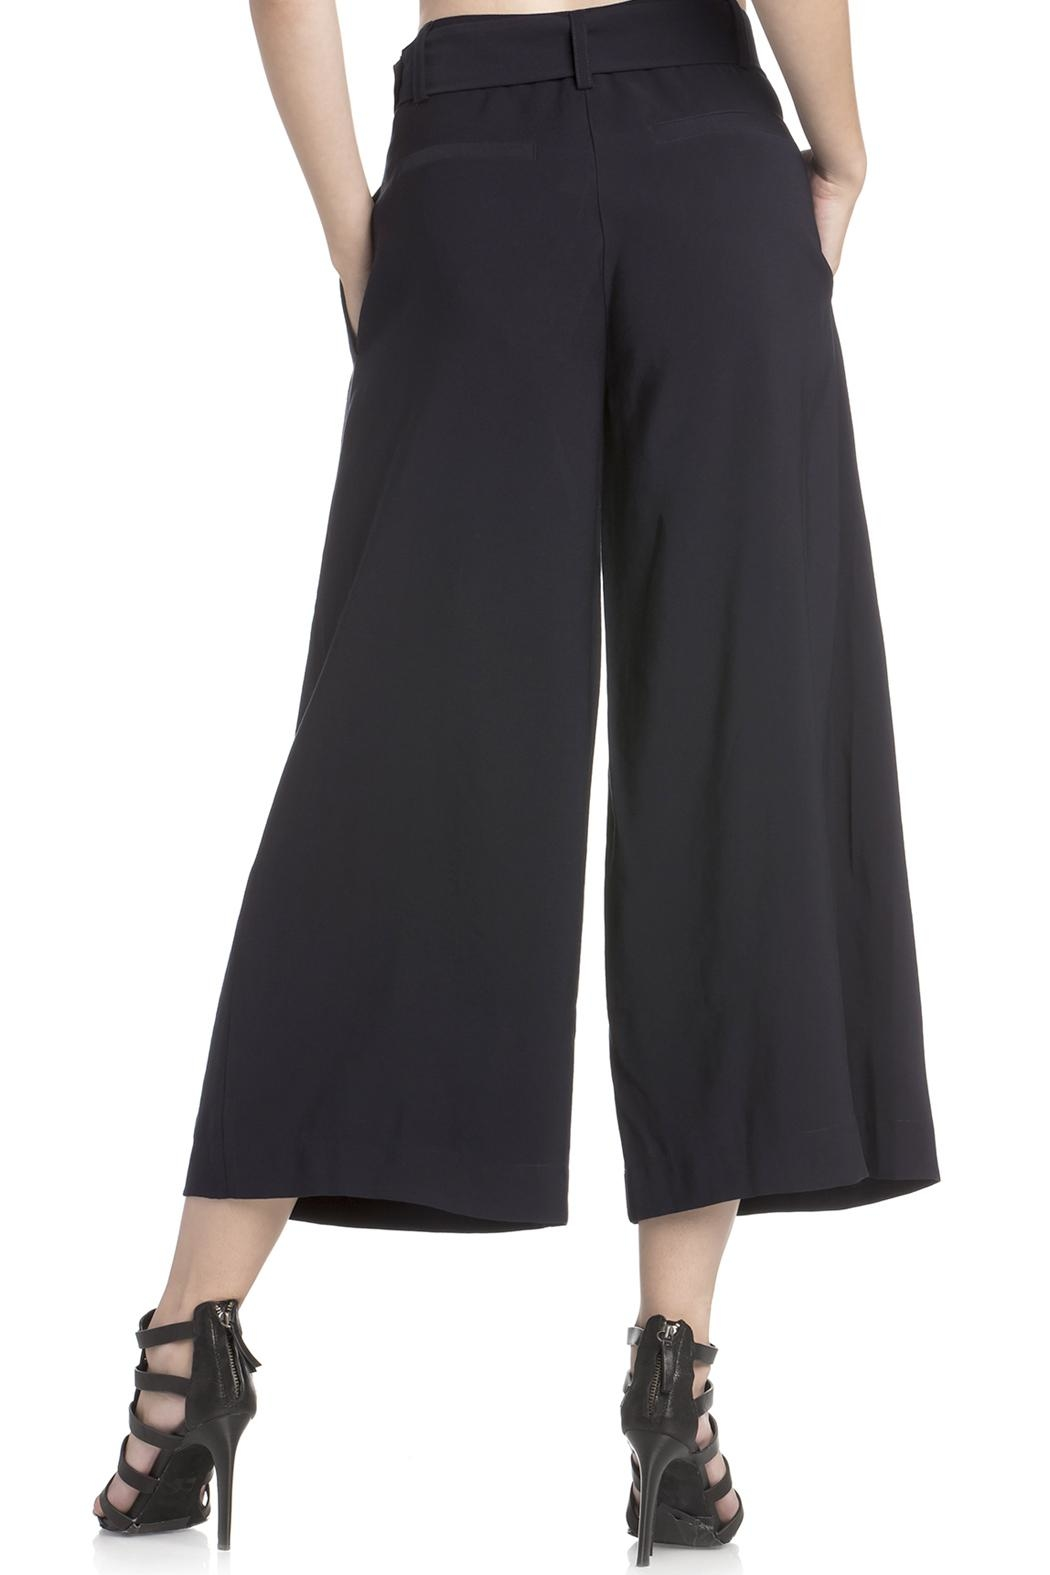 Dance & Marvel Alissa Culottes - Side Cropped Image